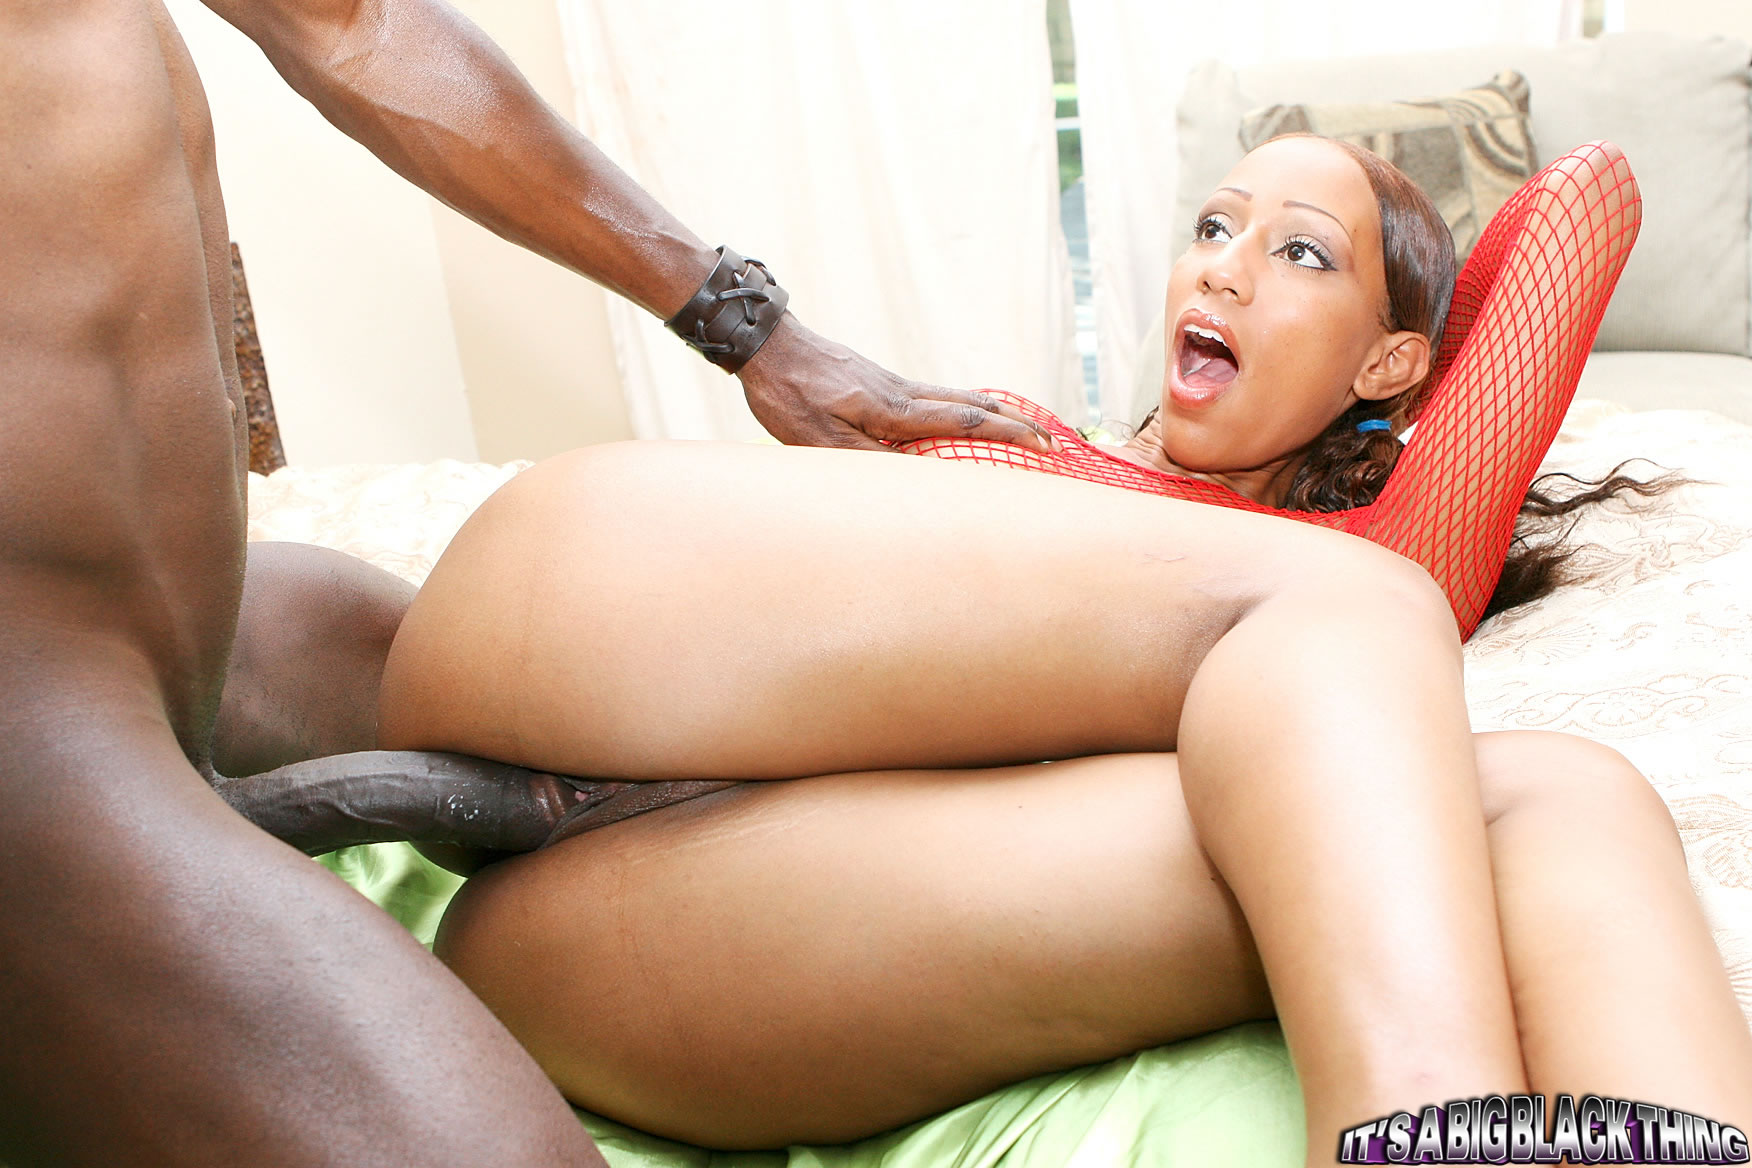 black anal naked - Anal Pics .com is a free anal porn site featuring thousands of categorized black  anal galleries updated daily.